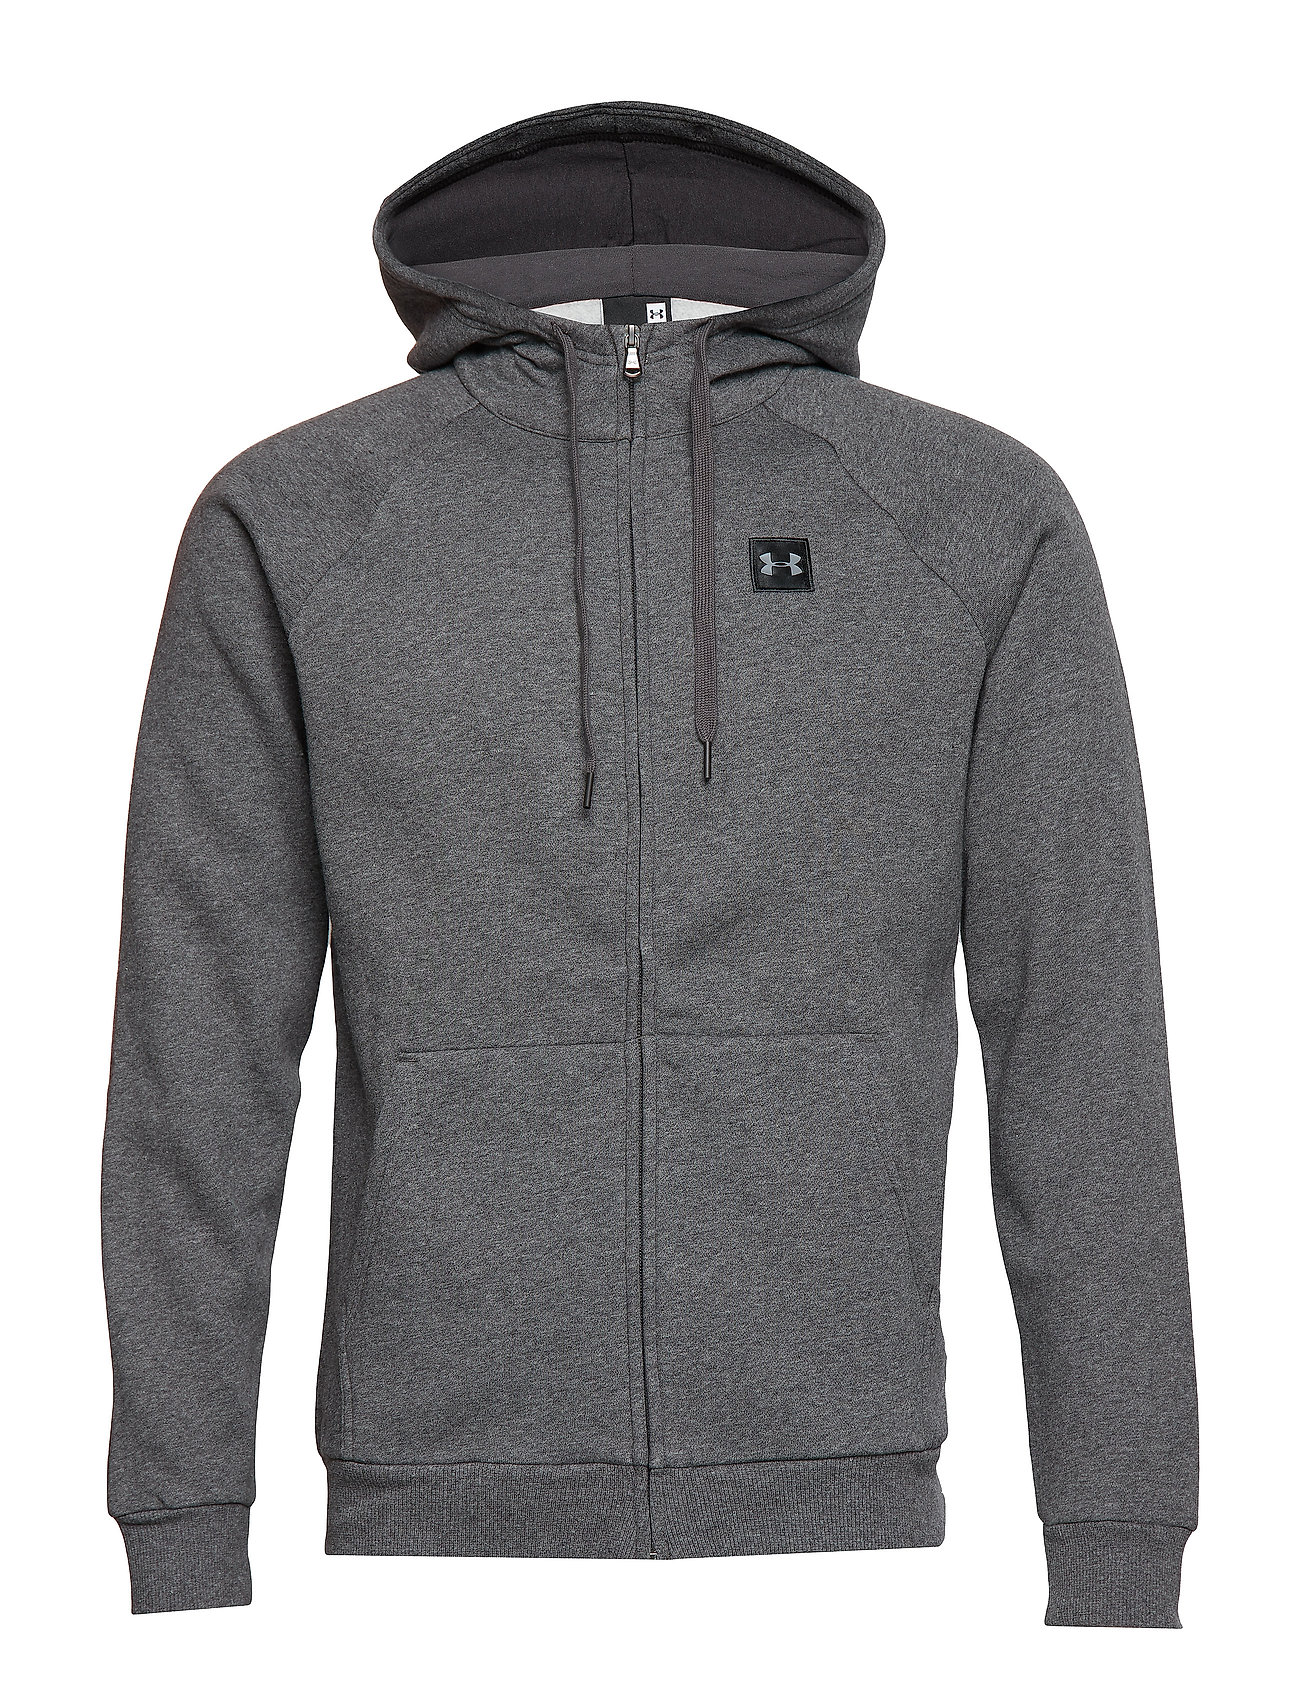 Under Armour RIVAL FLEECE FZ HOODIE - BLACK